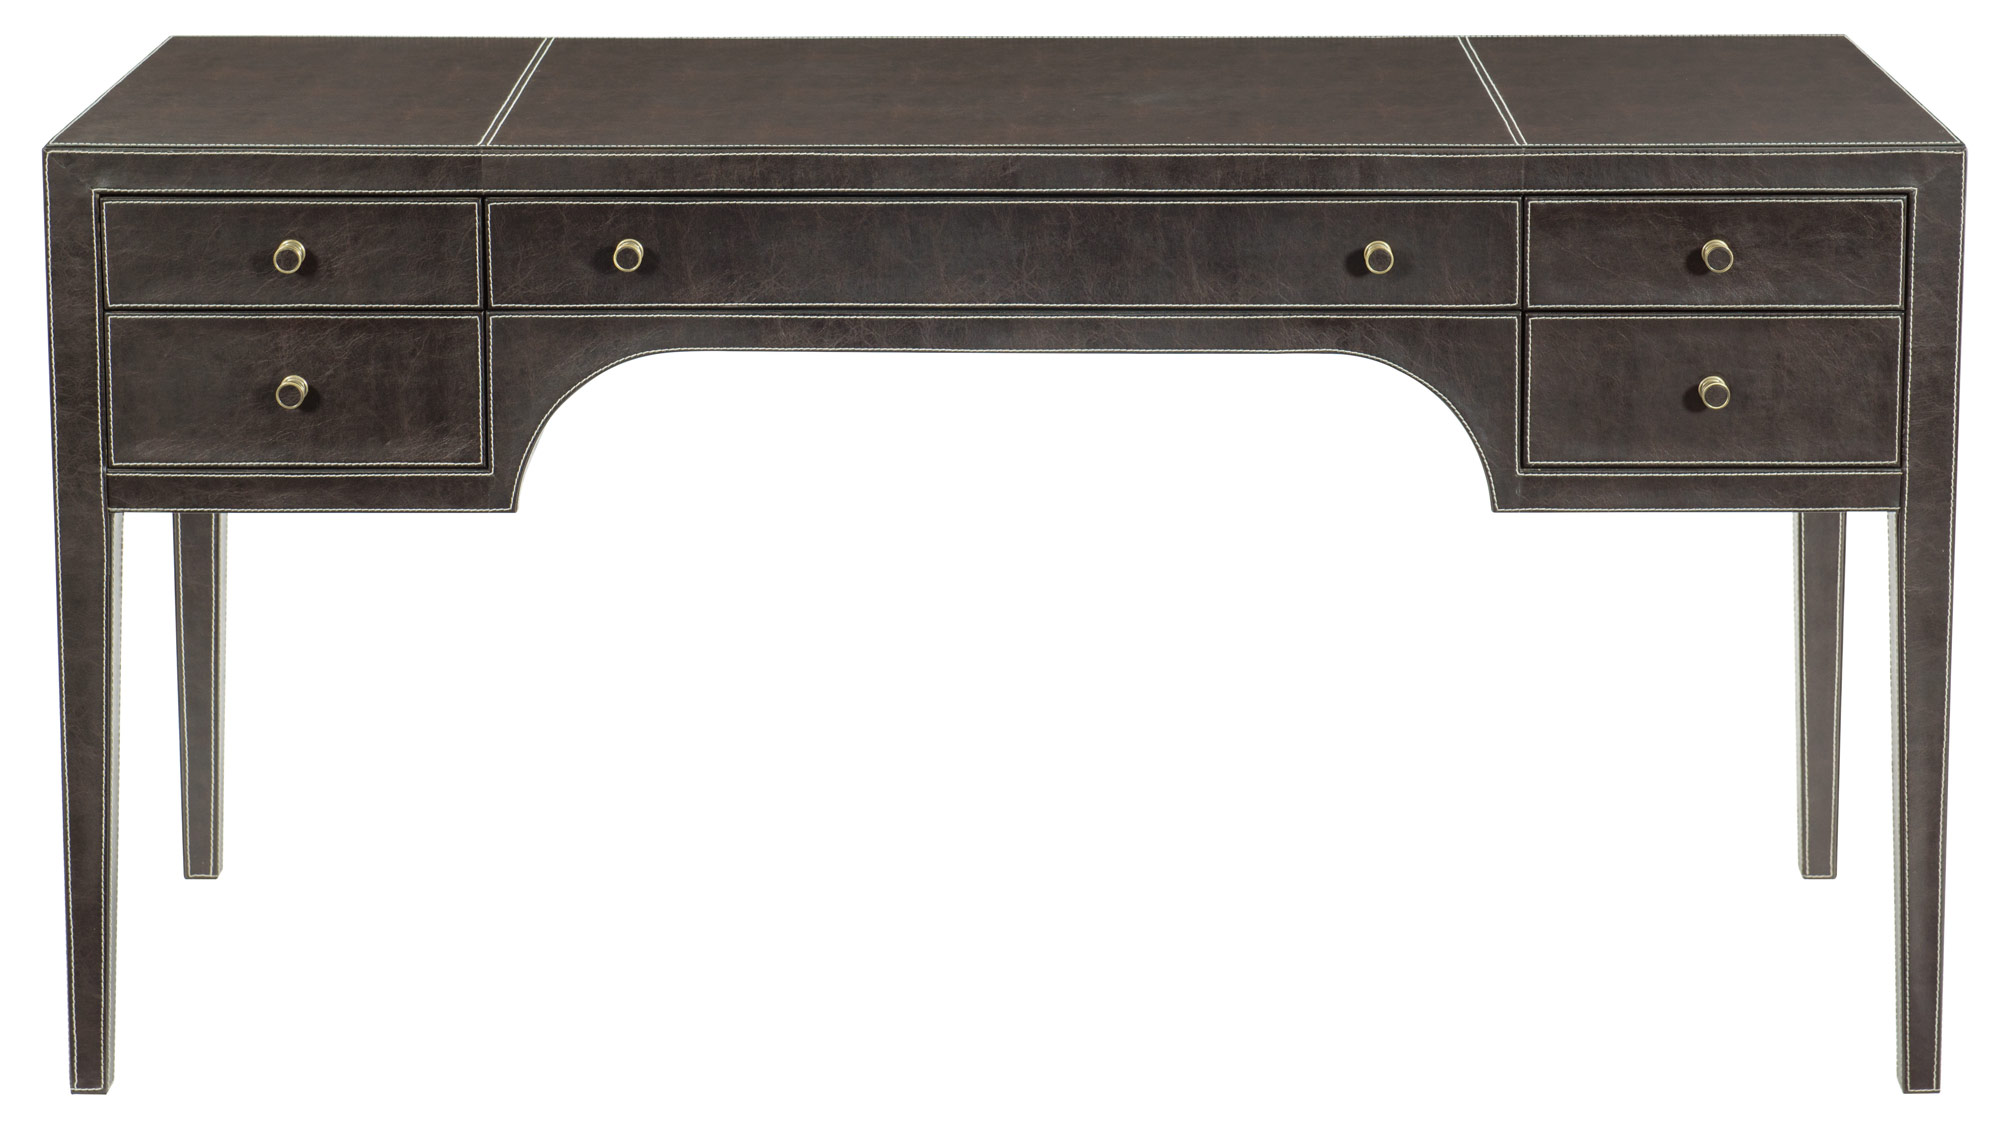 2017_Bernhardt_Clarendon_Leather_Wrapped_Desk_377-512_front.jpg